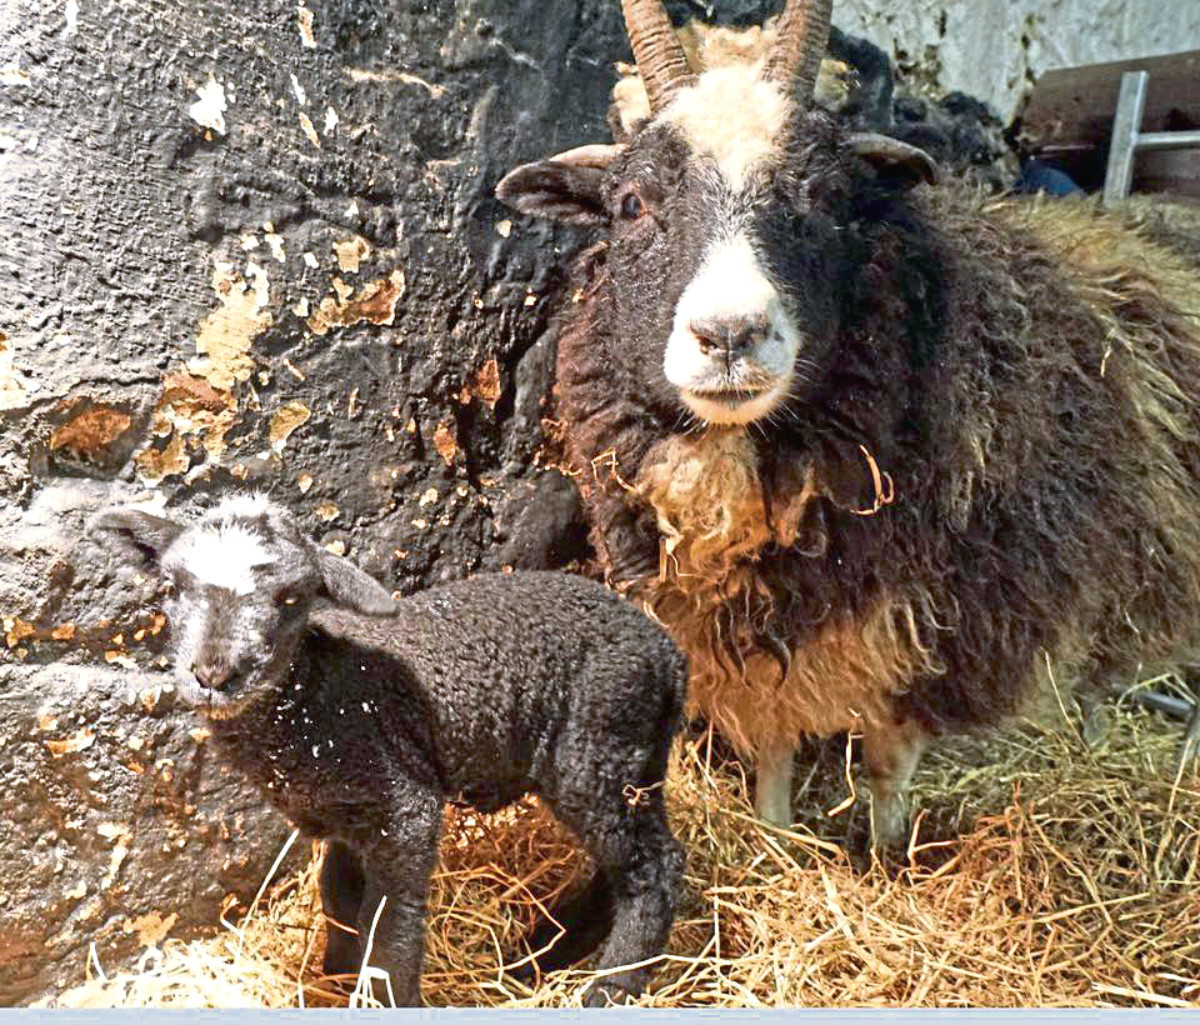 Two of Willows Animal Sanctuary's residents, a baby lamb and its mother